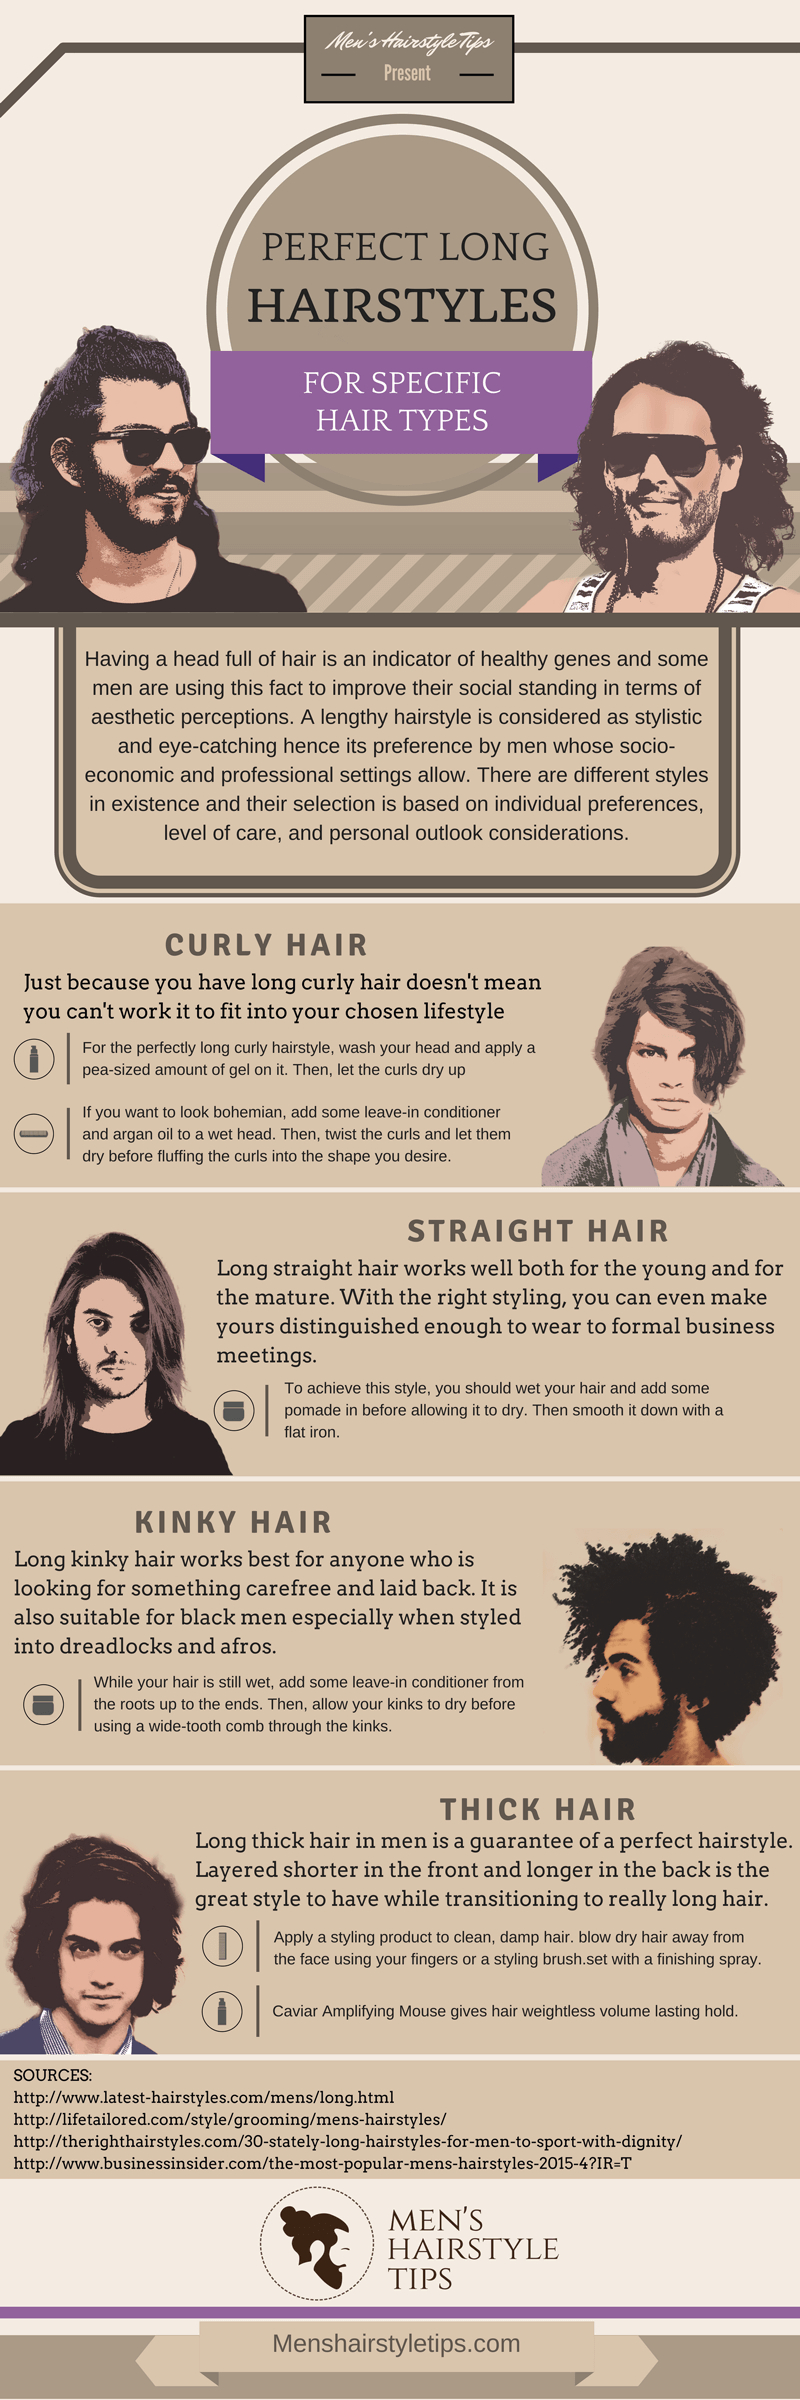 Infographic about Long hairstyles for men